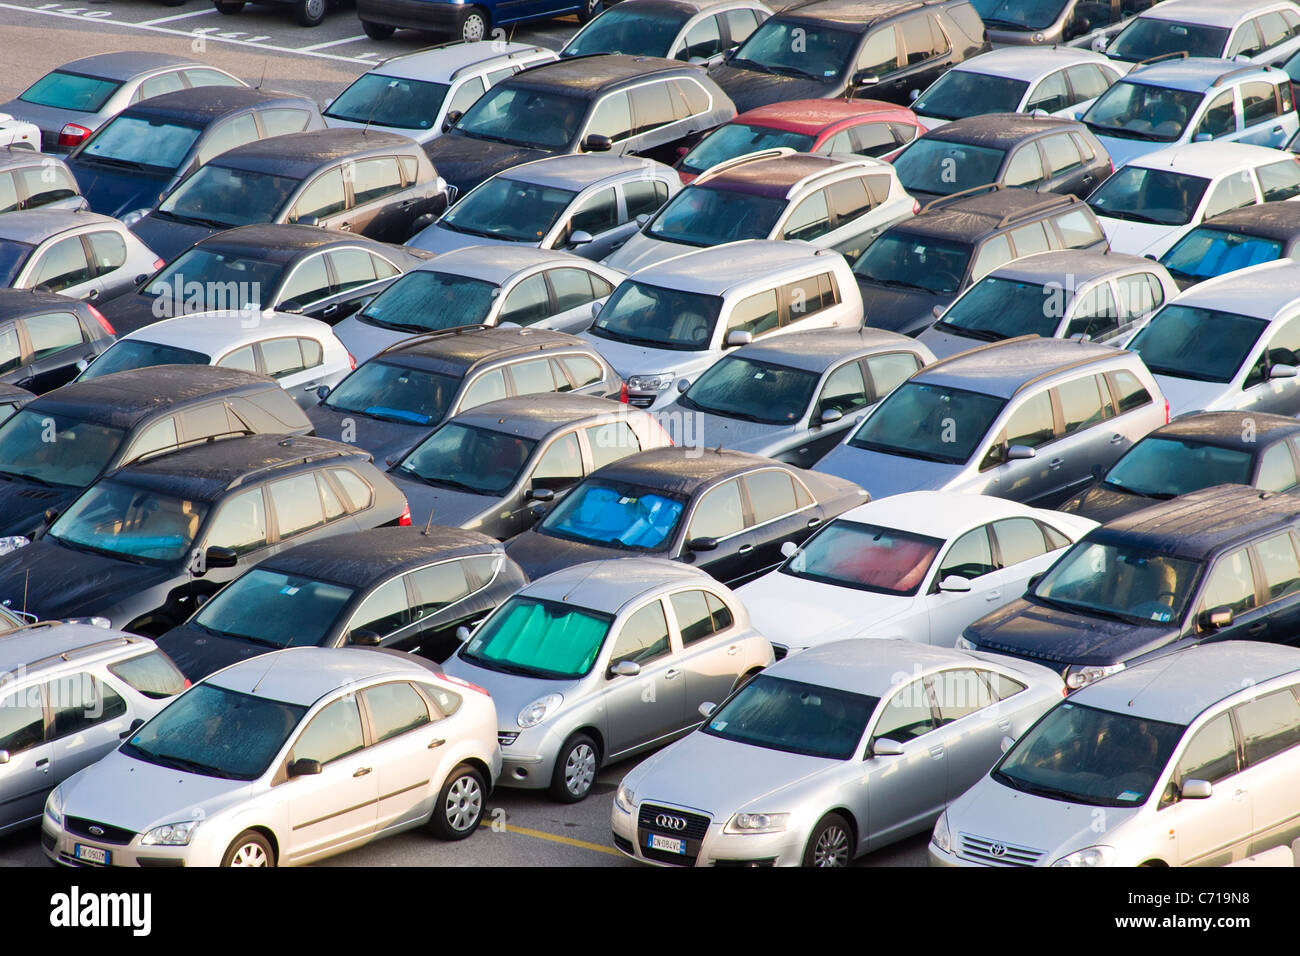 Tightly parked cars in a car park - Stock Image